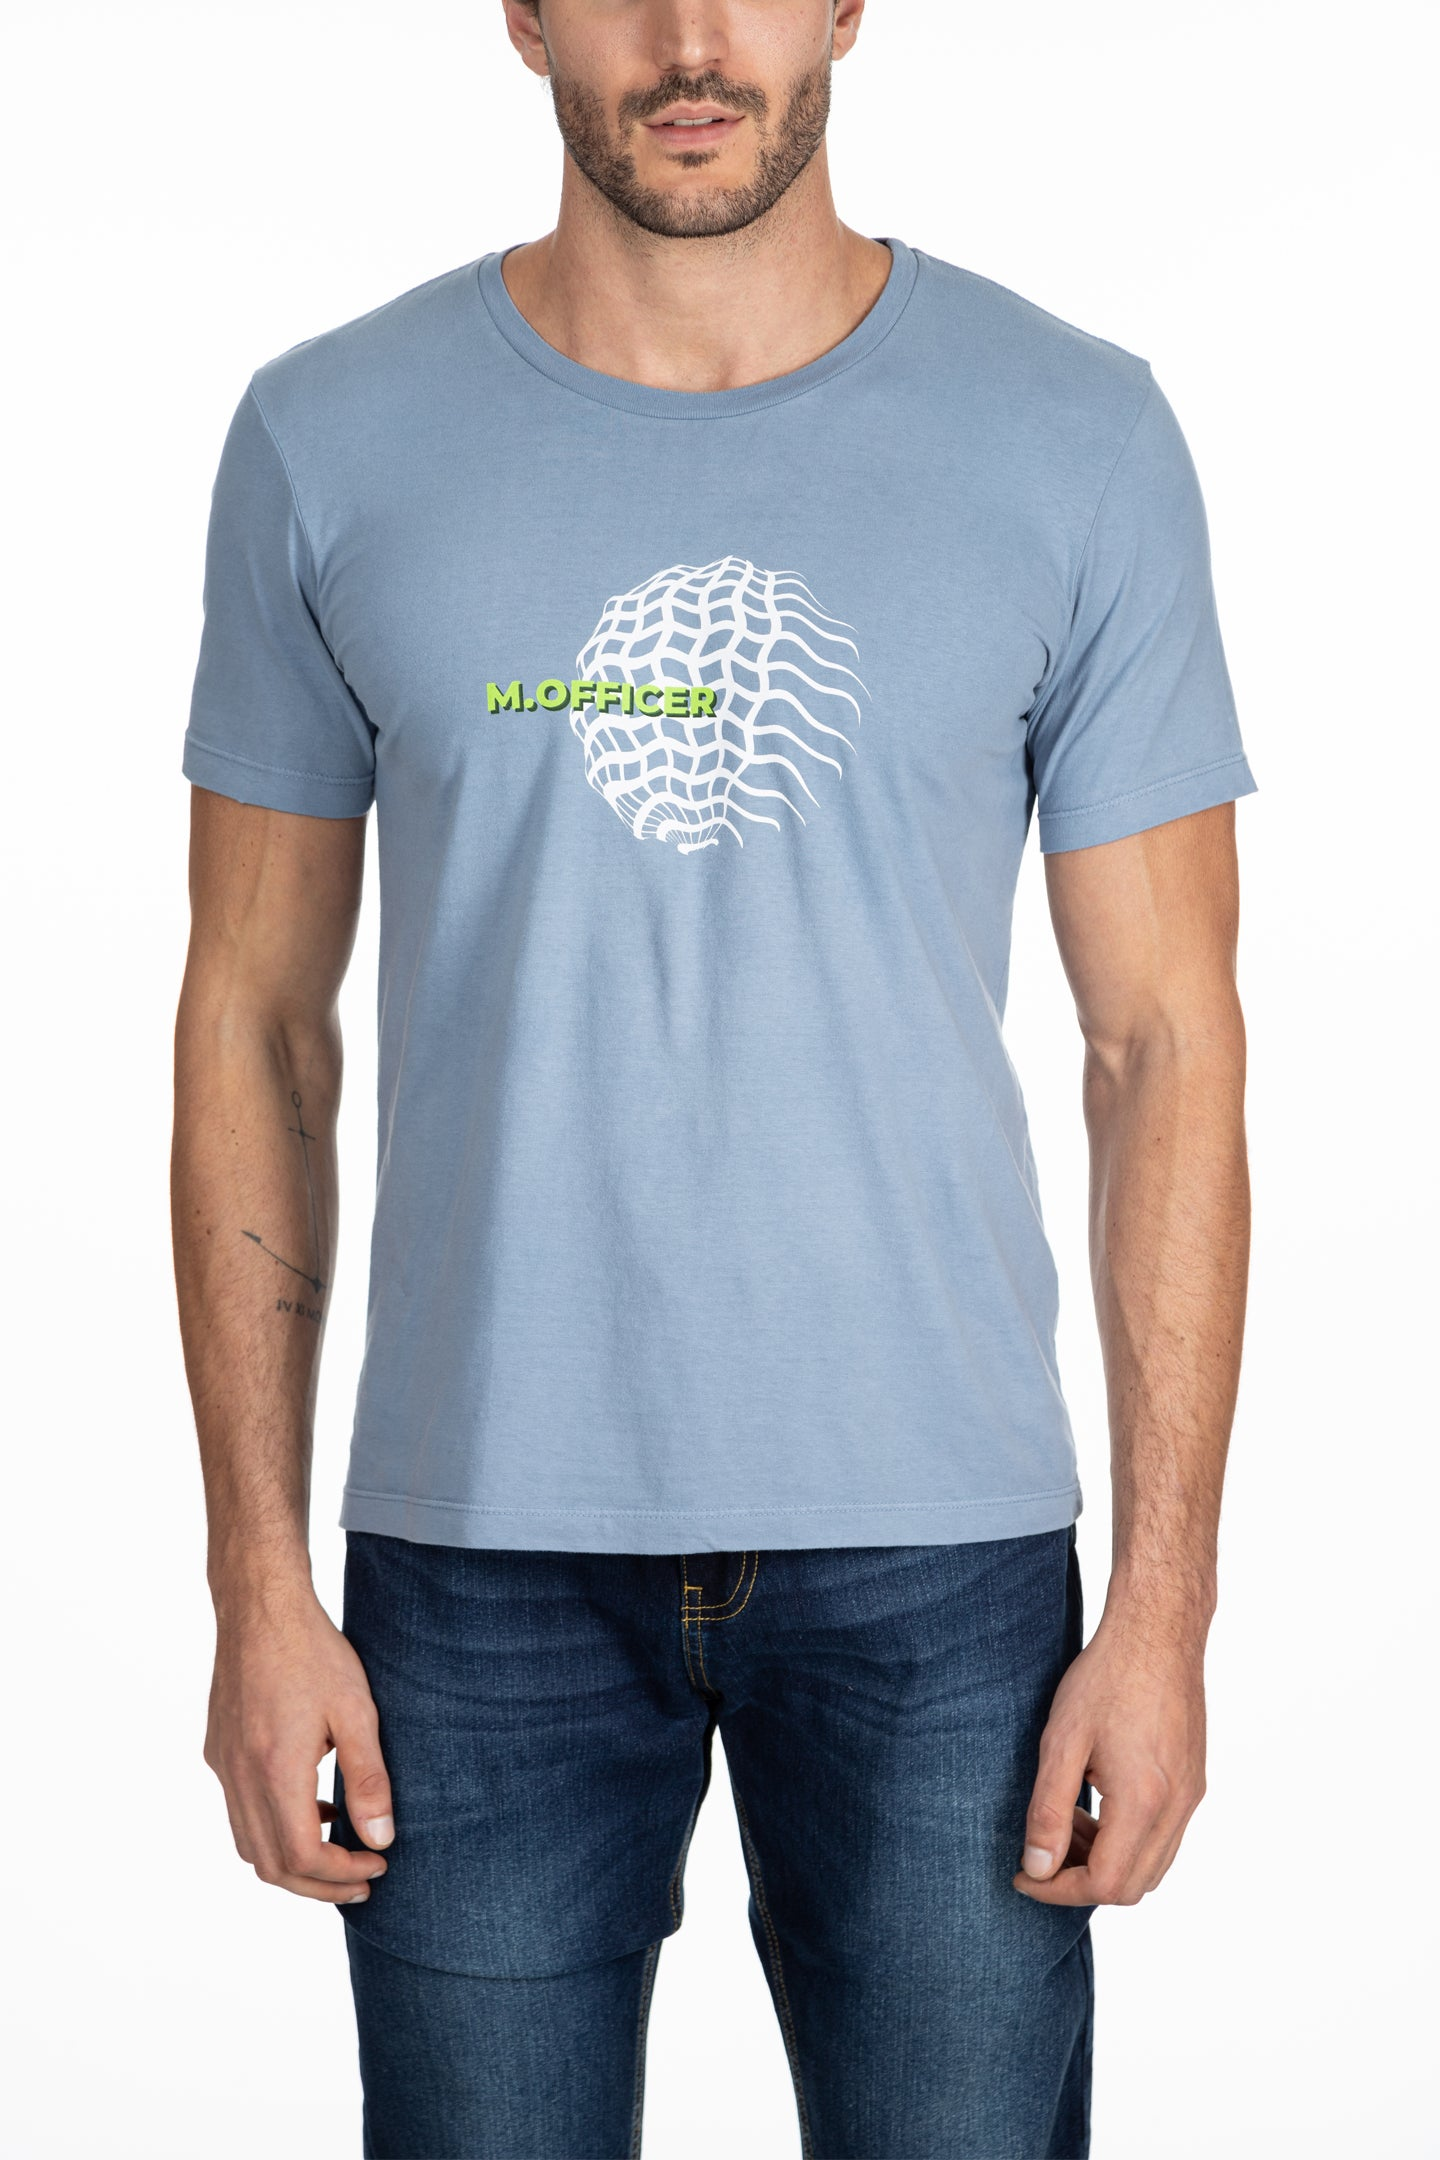 CAMISETA M/C SLIM SLIME EARTH